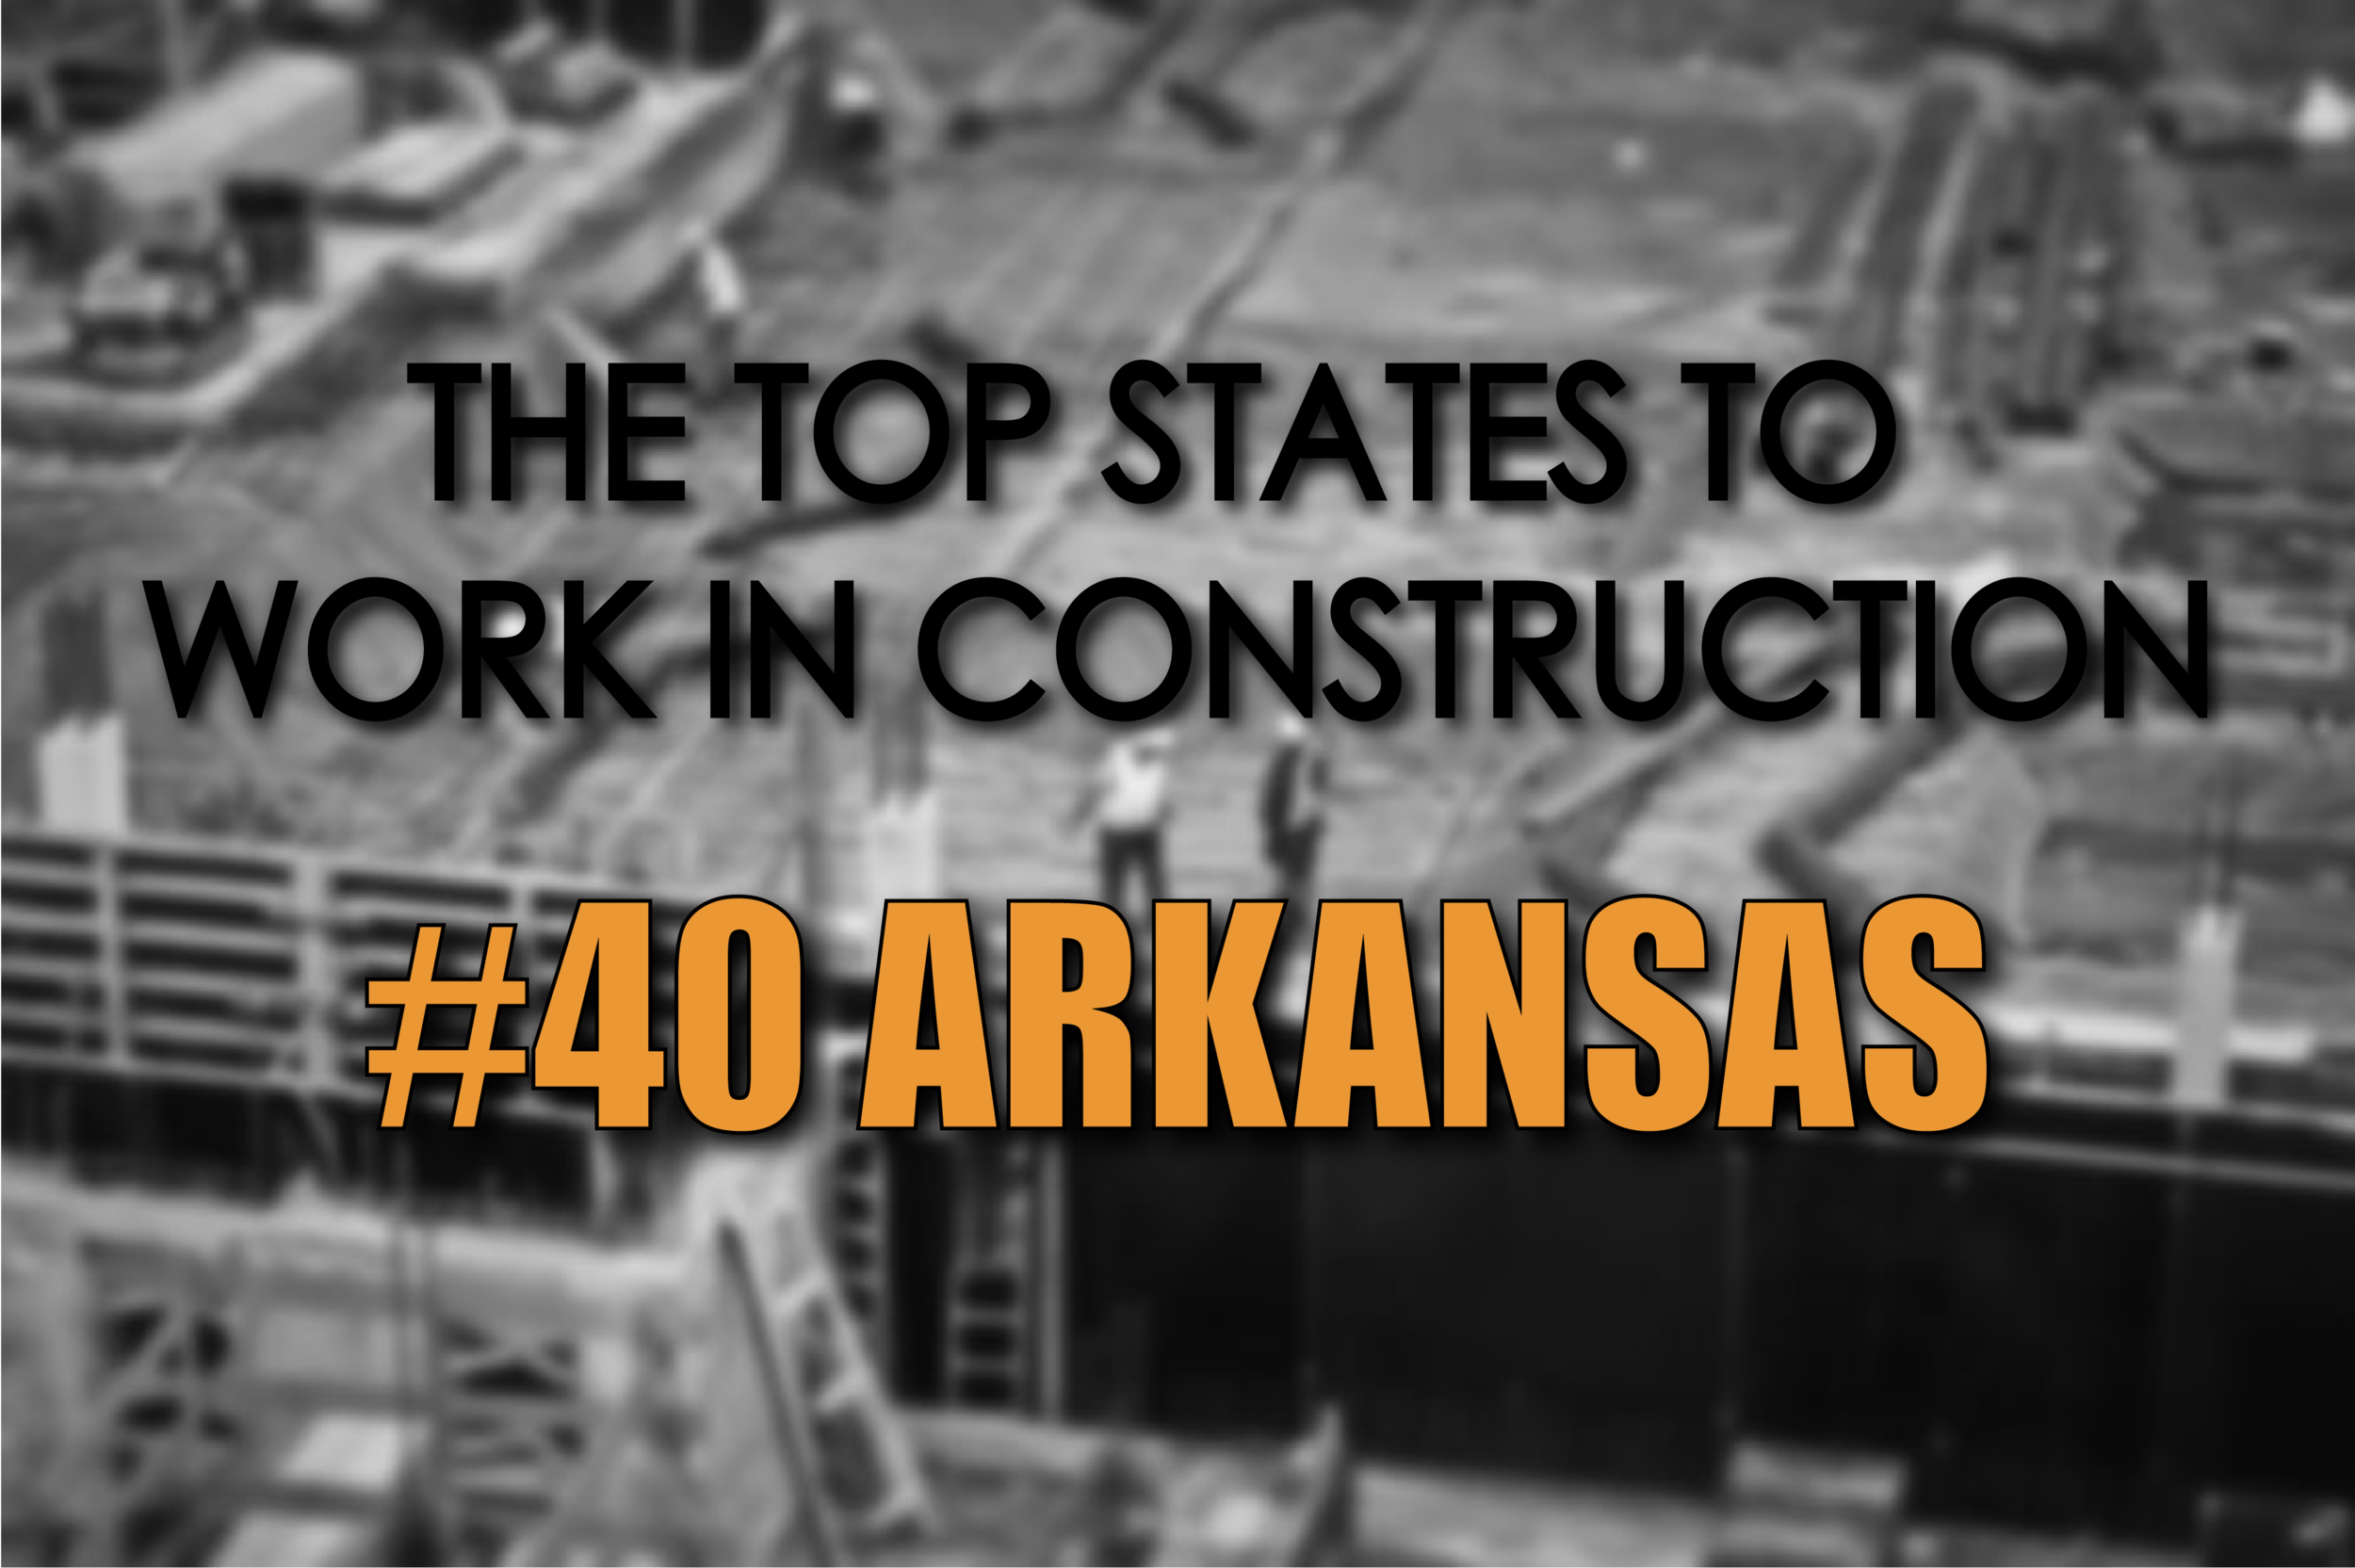 Arkansas best states to work in construction